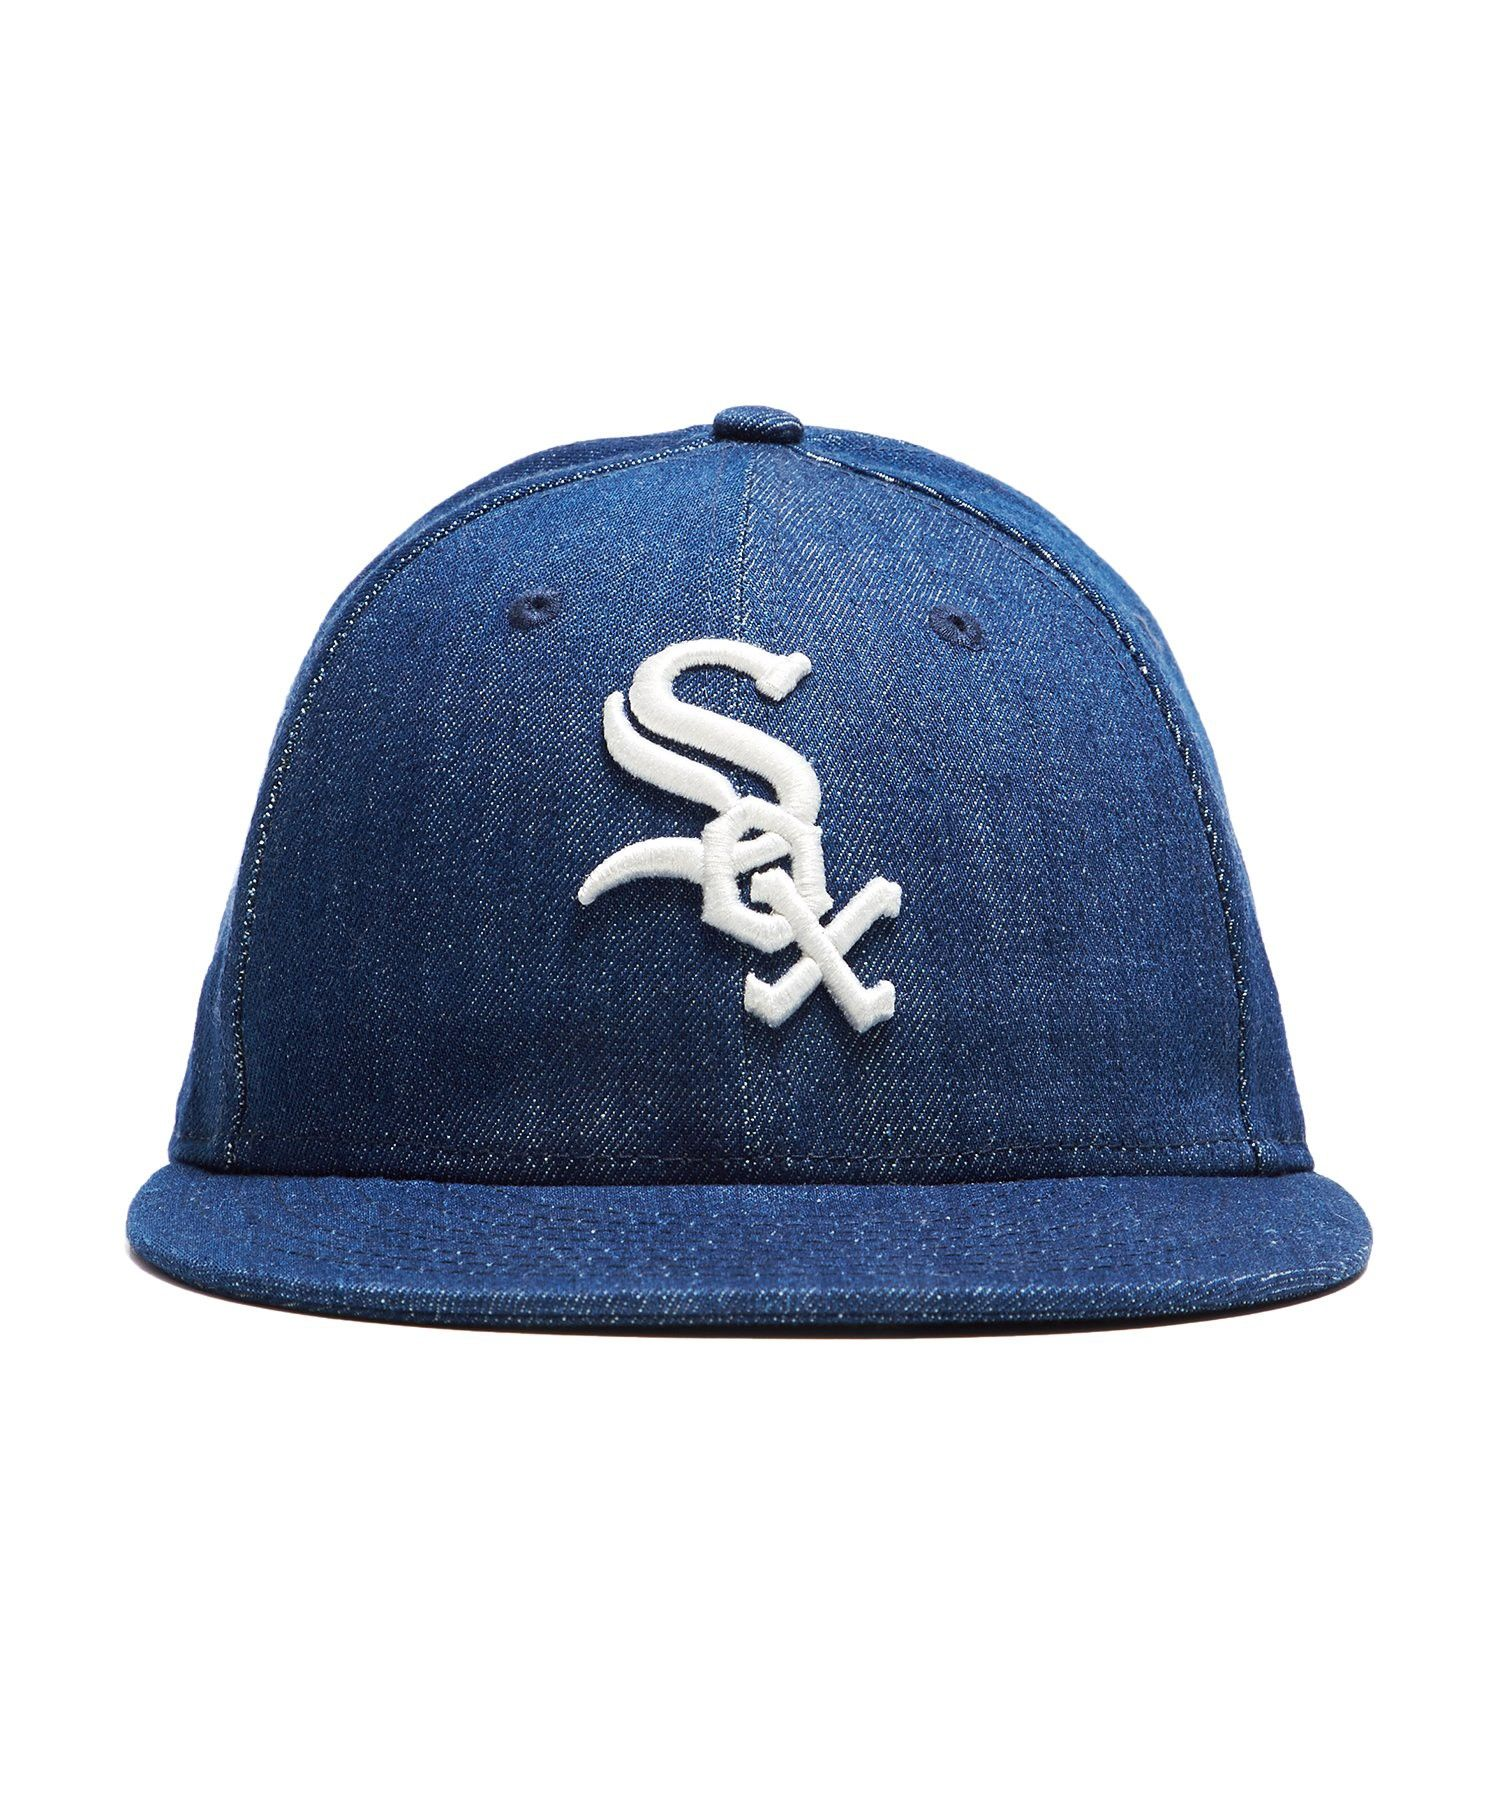 fd1457f9b1b Todd Snyder + New Era Mlb Chicago White Sox Cap In Cone Denim - 7 5 8